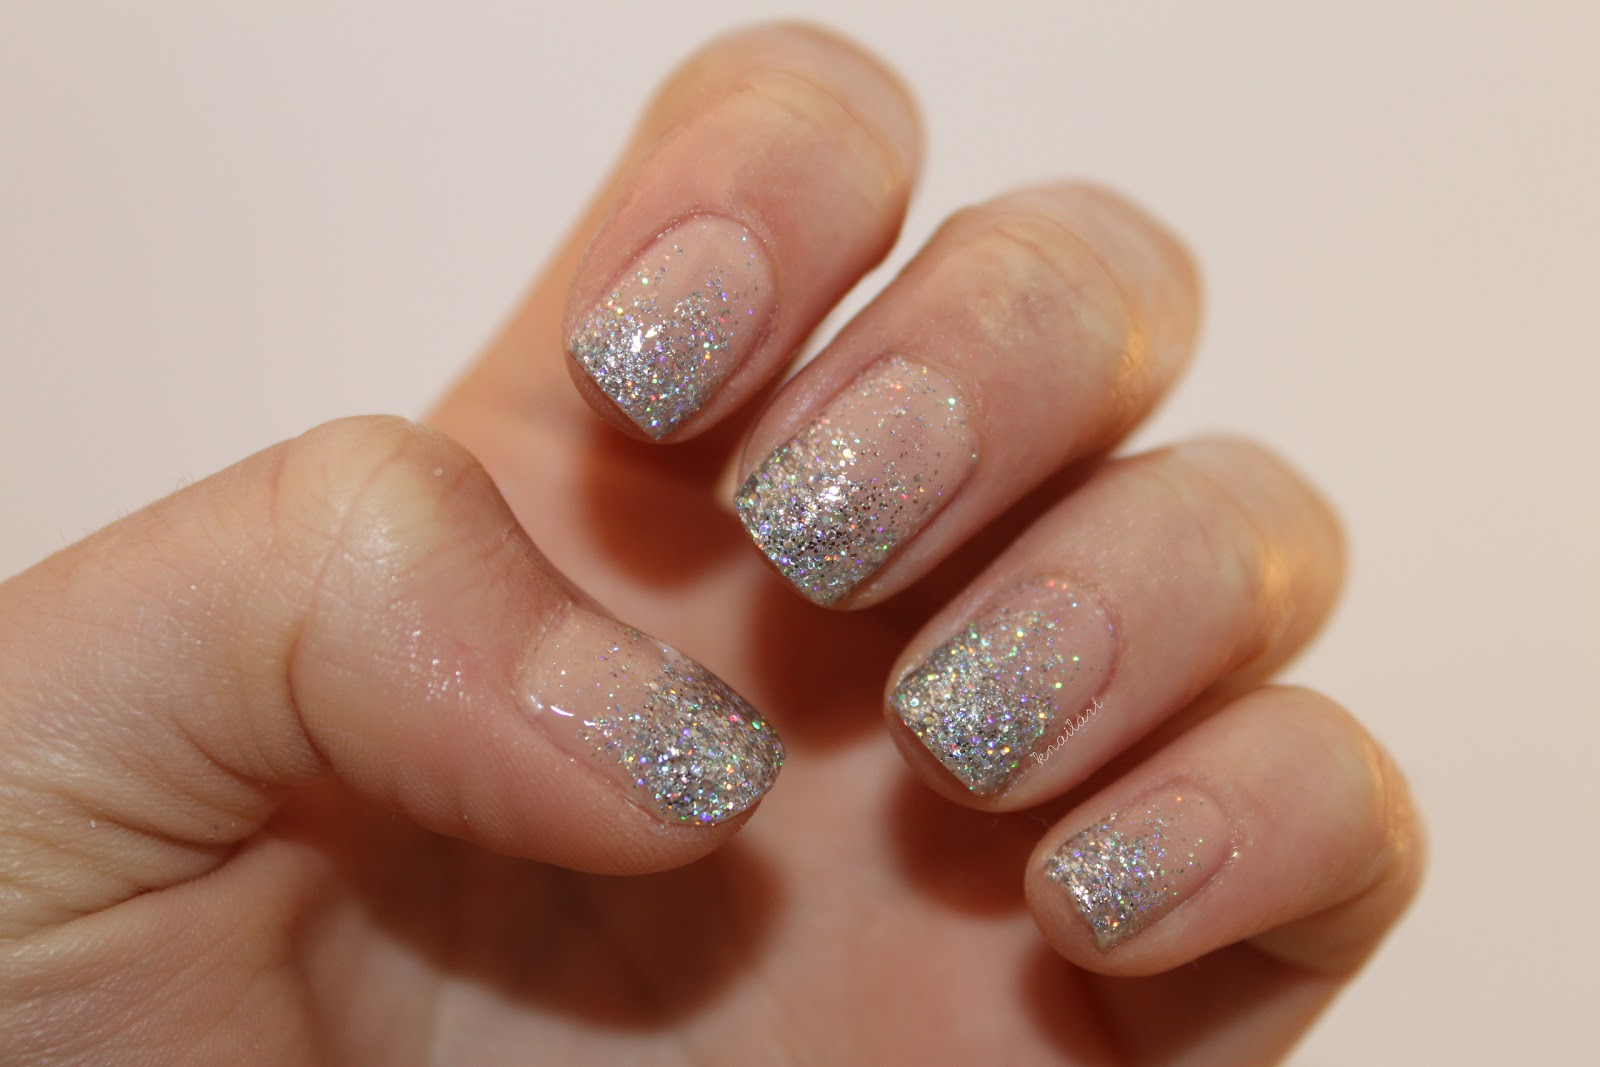 Diy nail art glitter gradient diy winter glitter gradient no gradient glitter nail art tutorial how to paint a view images prinsesfo Gallery